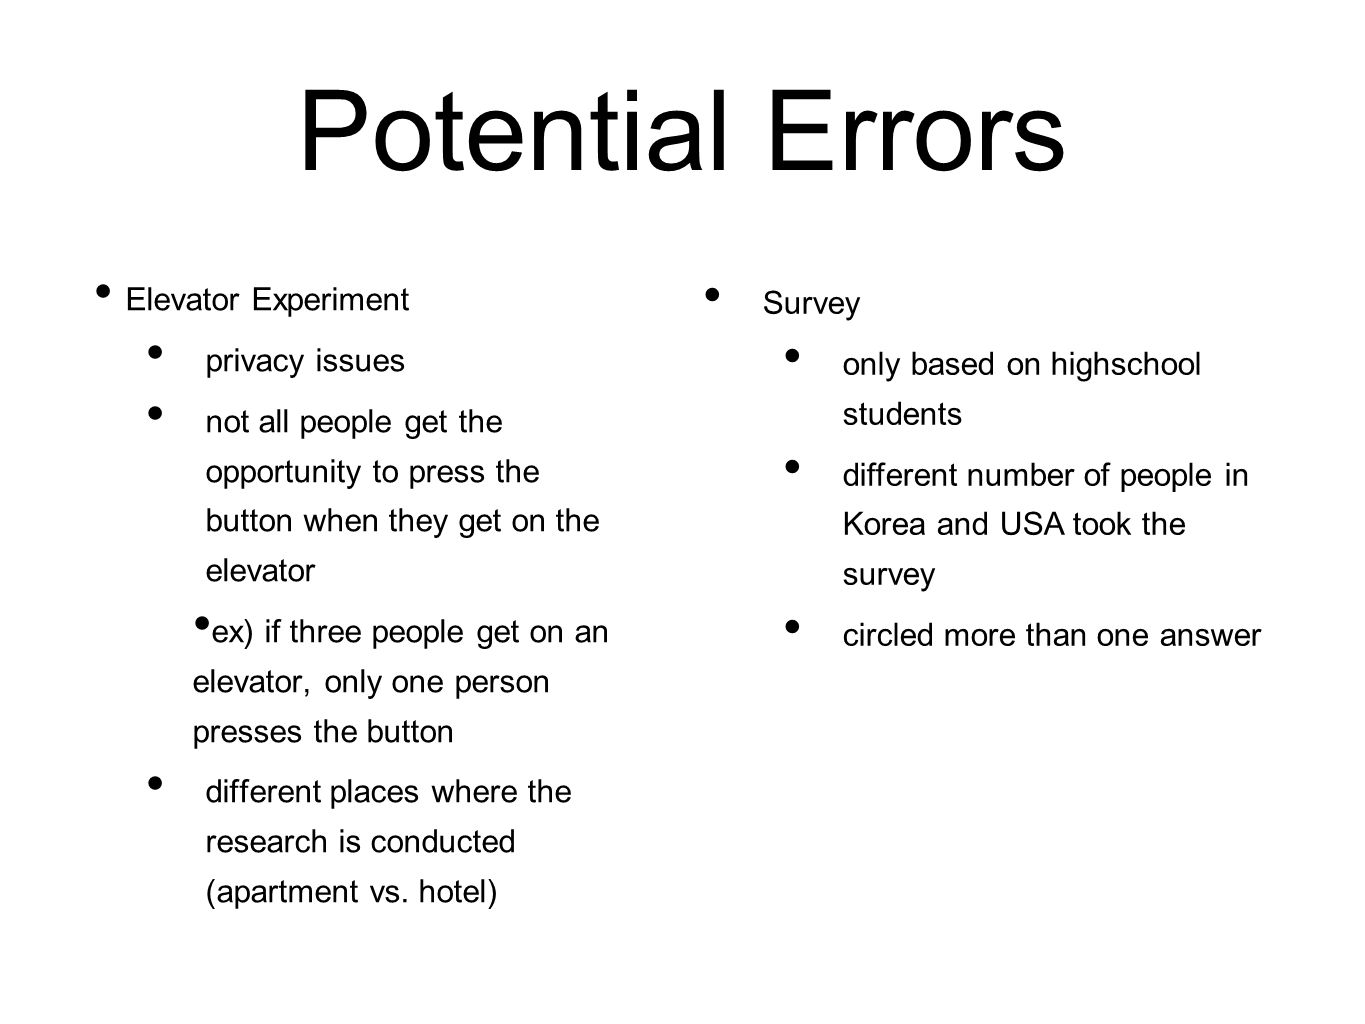 Potential Errors Elevator Experiment privacy issues not all people get the opportunity to press the button when they get on the elevator ex) if three people get on an elevator, only one person presses the button different places where the research is conducted (apartment vs.